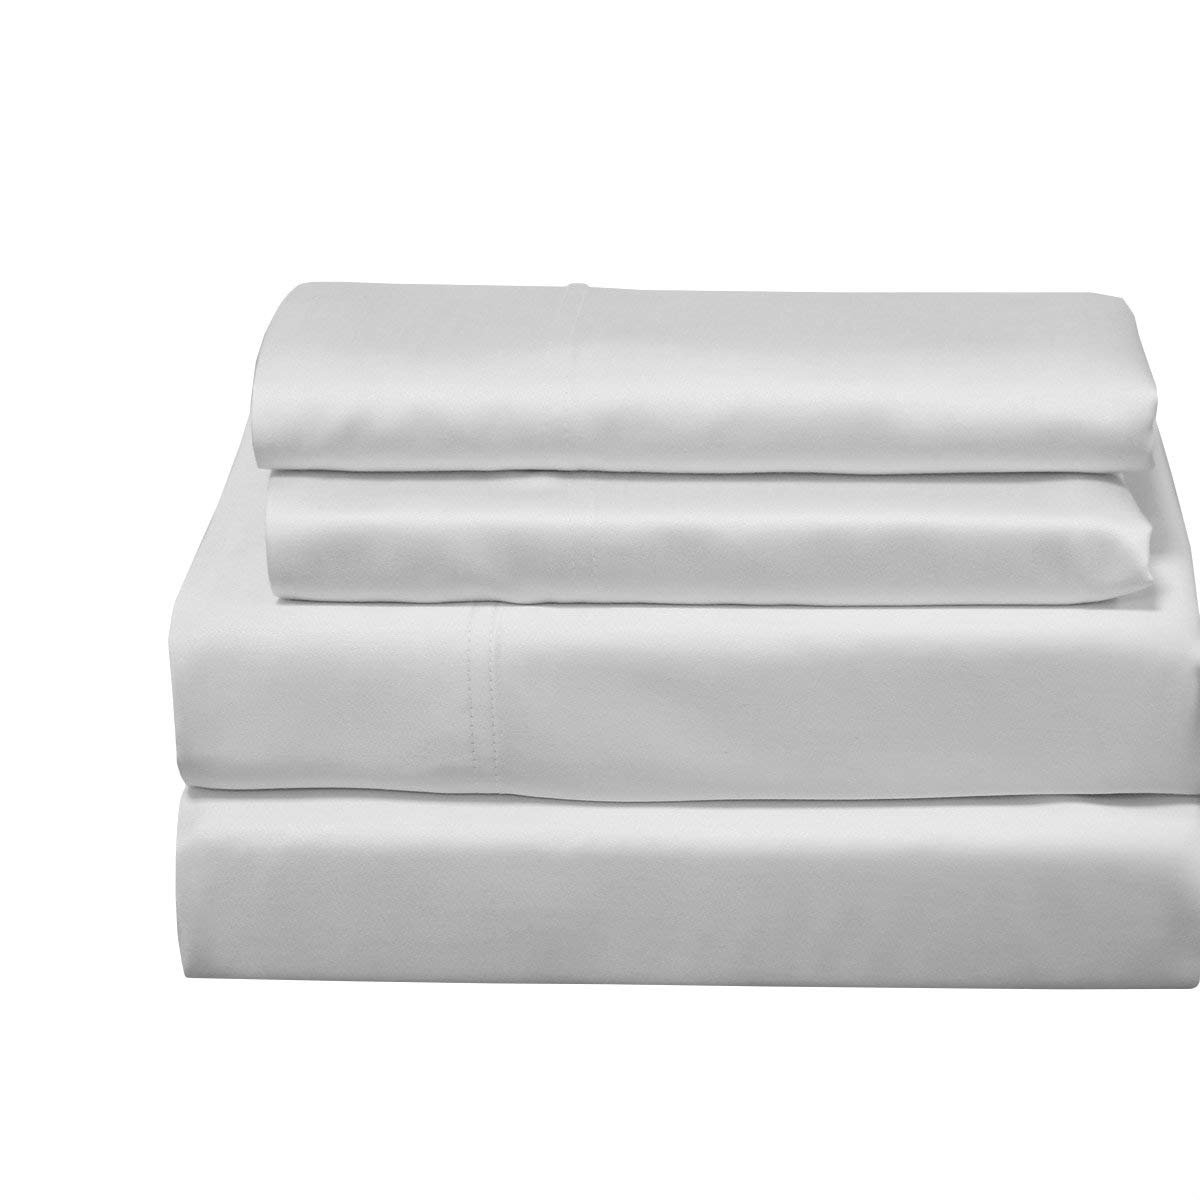 Abripedic 100% Bamboo Set of 2 Pillowcases, 600TC - Standard Size, Solid White - Super Soft & Cool Bamboo Viscose Pillow Case